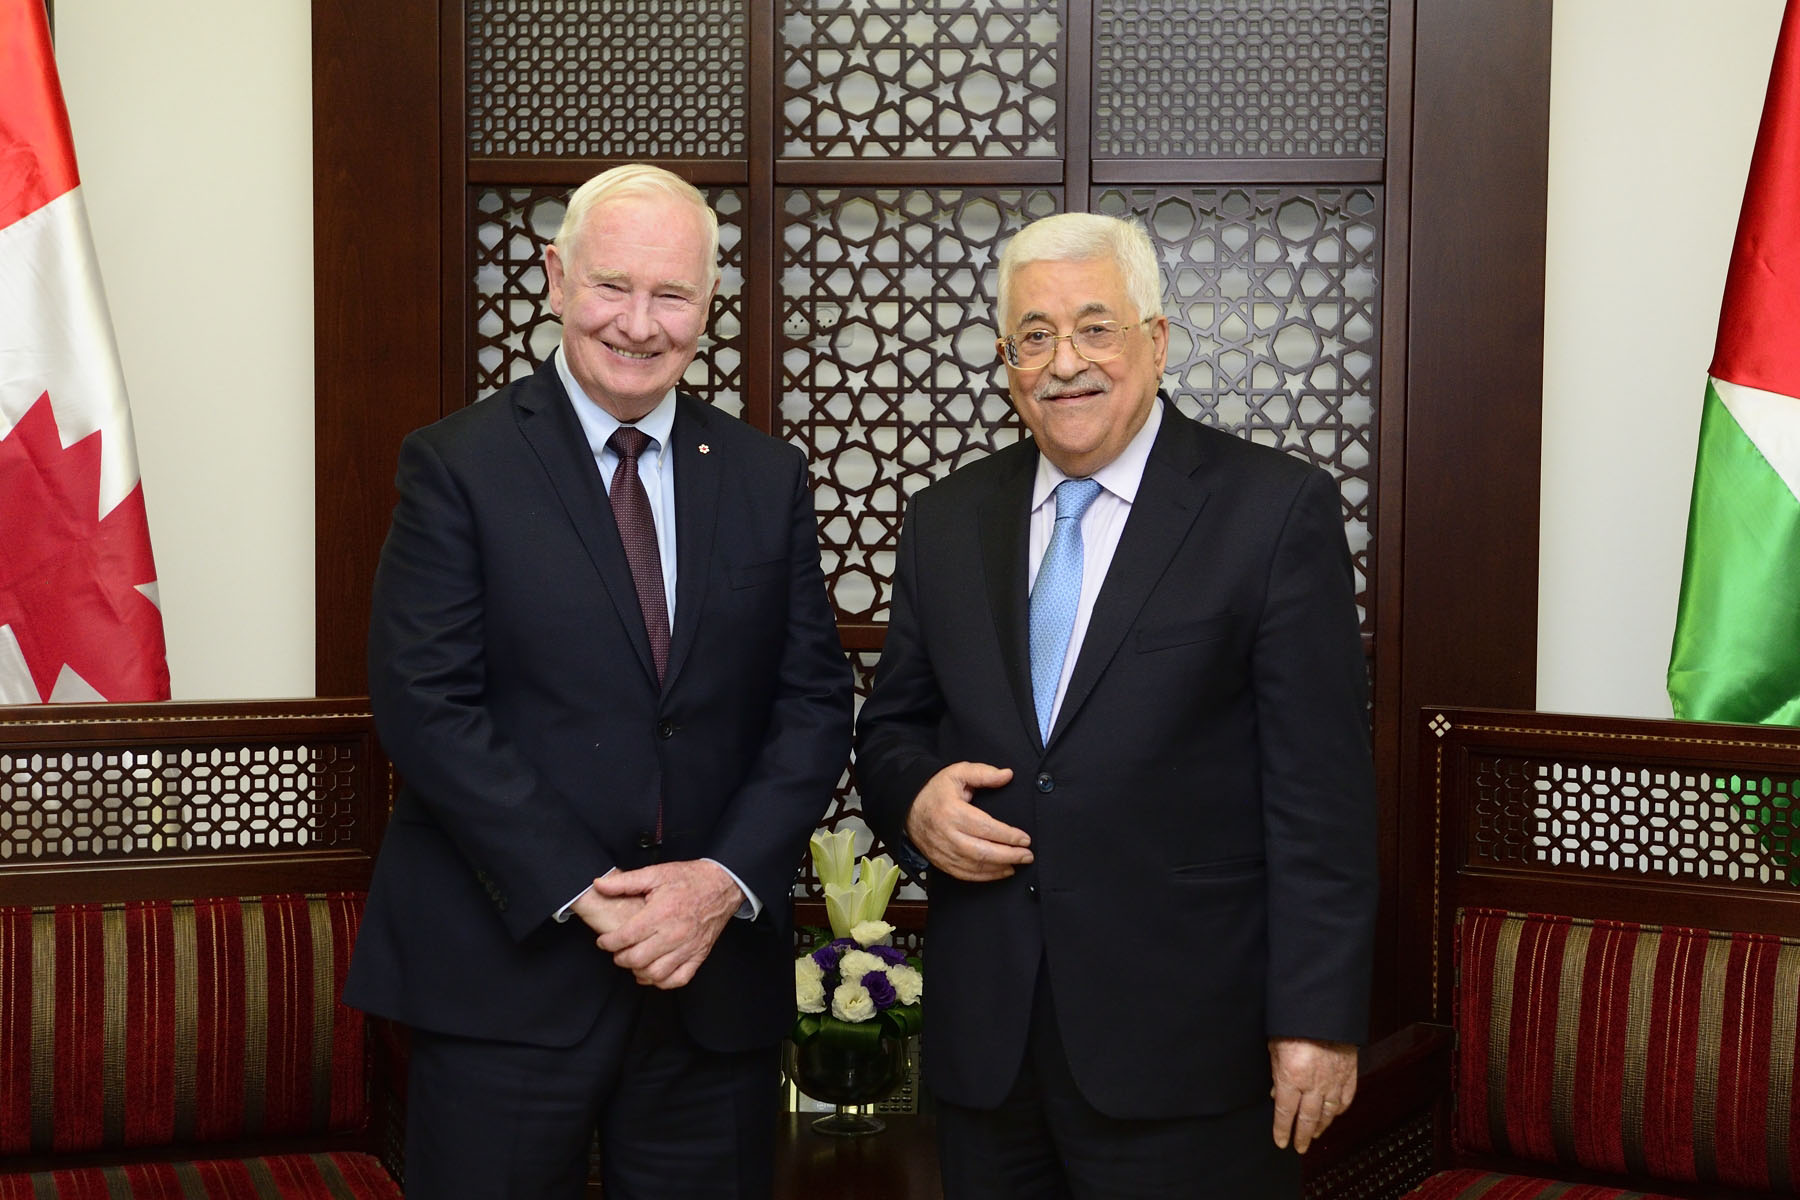 Following the ceremony, the Governor General met with President Abbas to discuss Canada's commitment to continue to work with the Palestinian Authority.